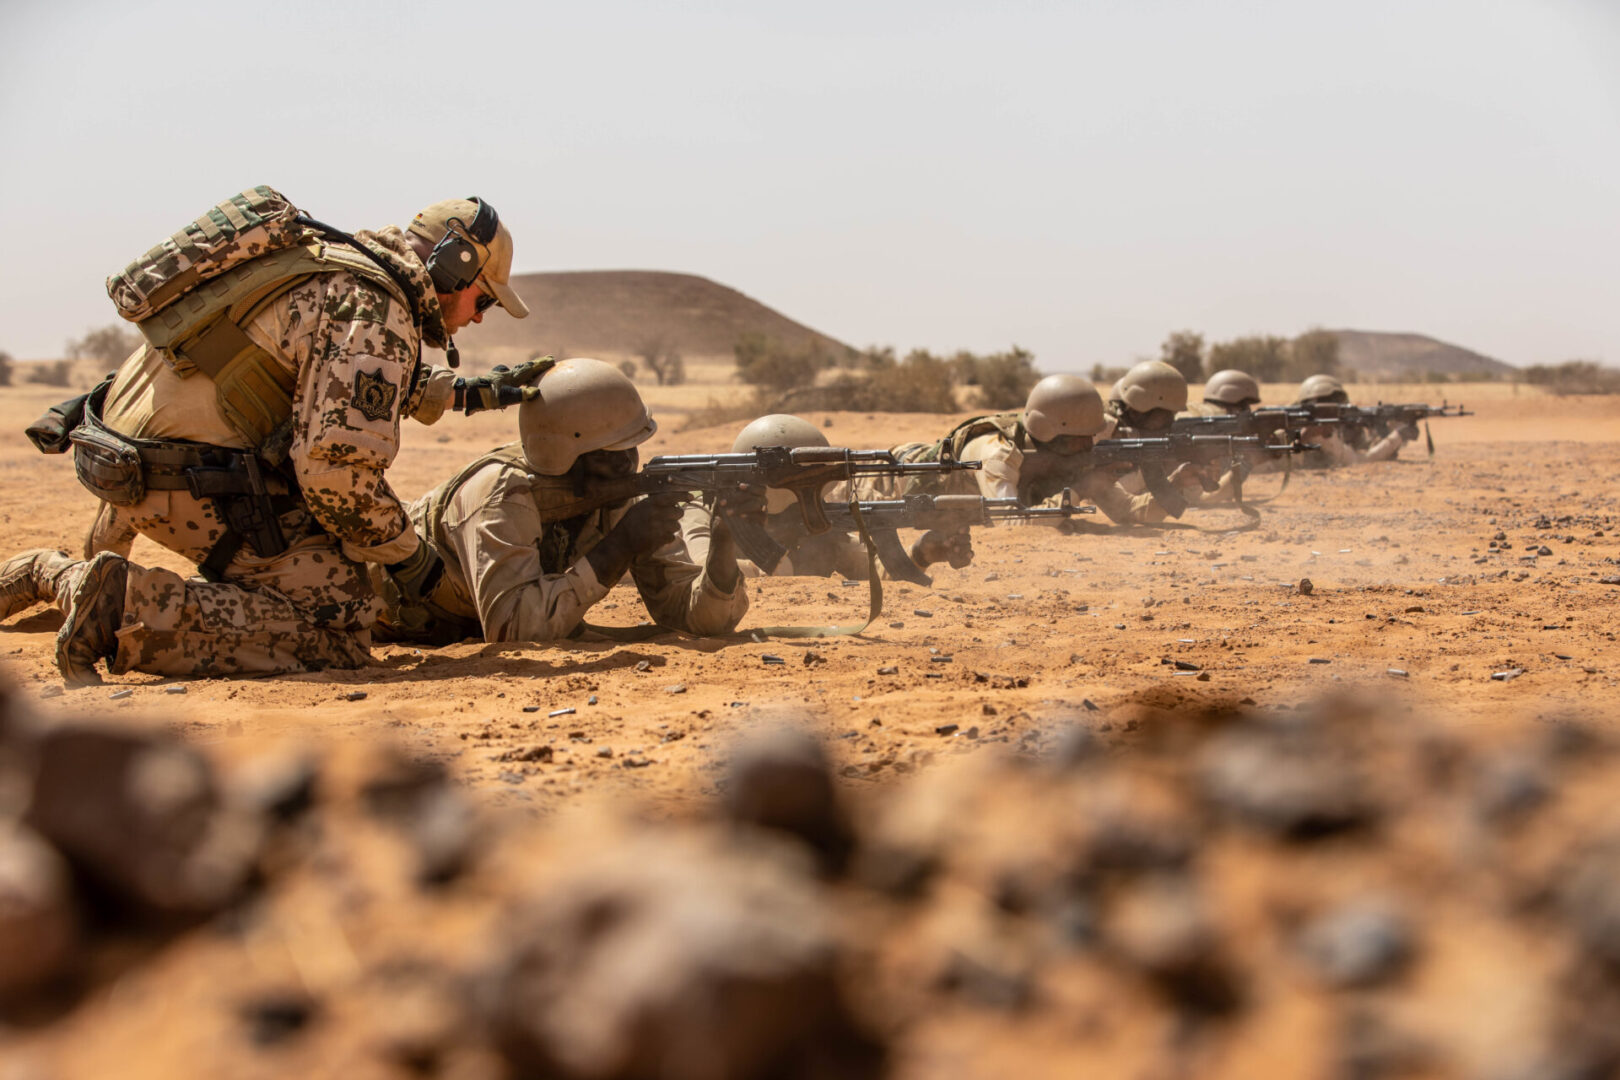 A German Armed Forces instructor coaches Mauritanian soldiers refining their marksmanship skills during Flintlock 20 near Kaedi, Mauritania, Feb. 12, 2020. Since 2005, nations from throughout Africa, Europe, North America and elsewhere have come together to conduct Flintlock exercises in austere environments to work and train together with one clear goal: to help improve conditions and the capabilities of partner nations so the people in this region can pursue a life free from violence.  (U.S. Army photo by Spc. Wheeler Brunschmid.)